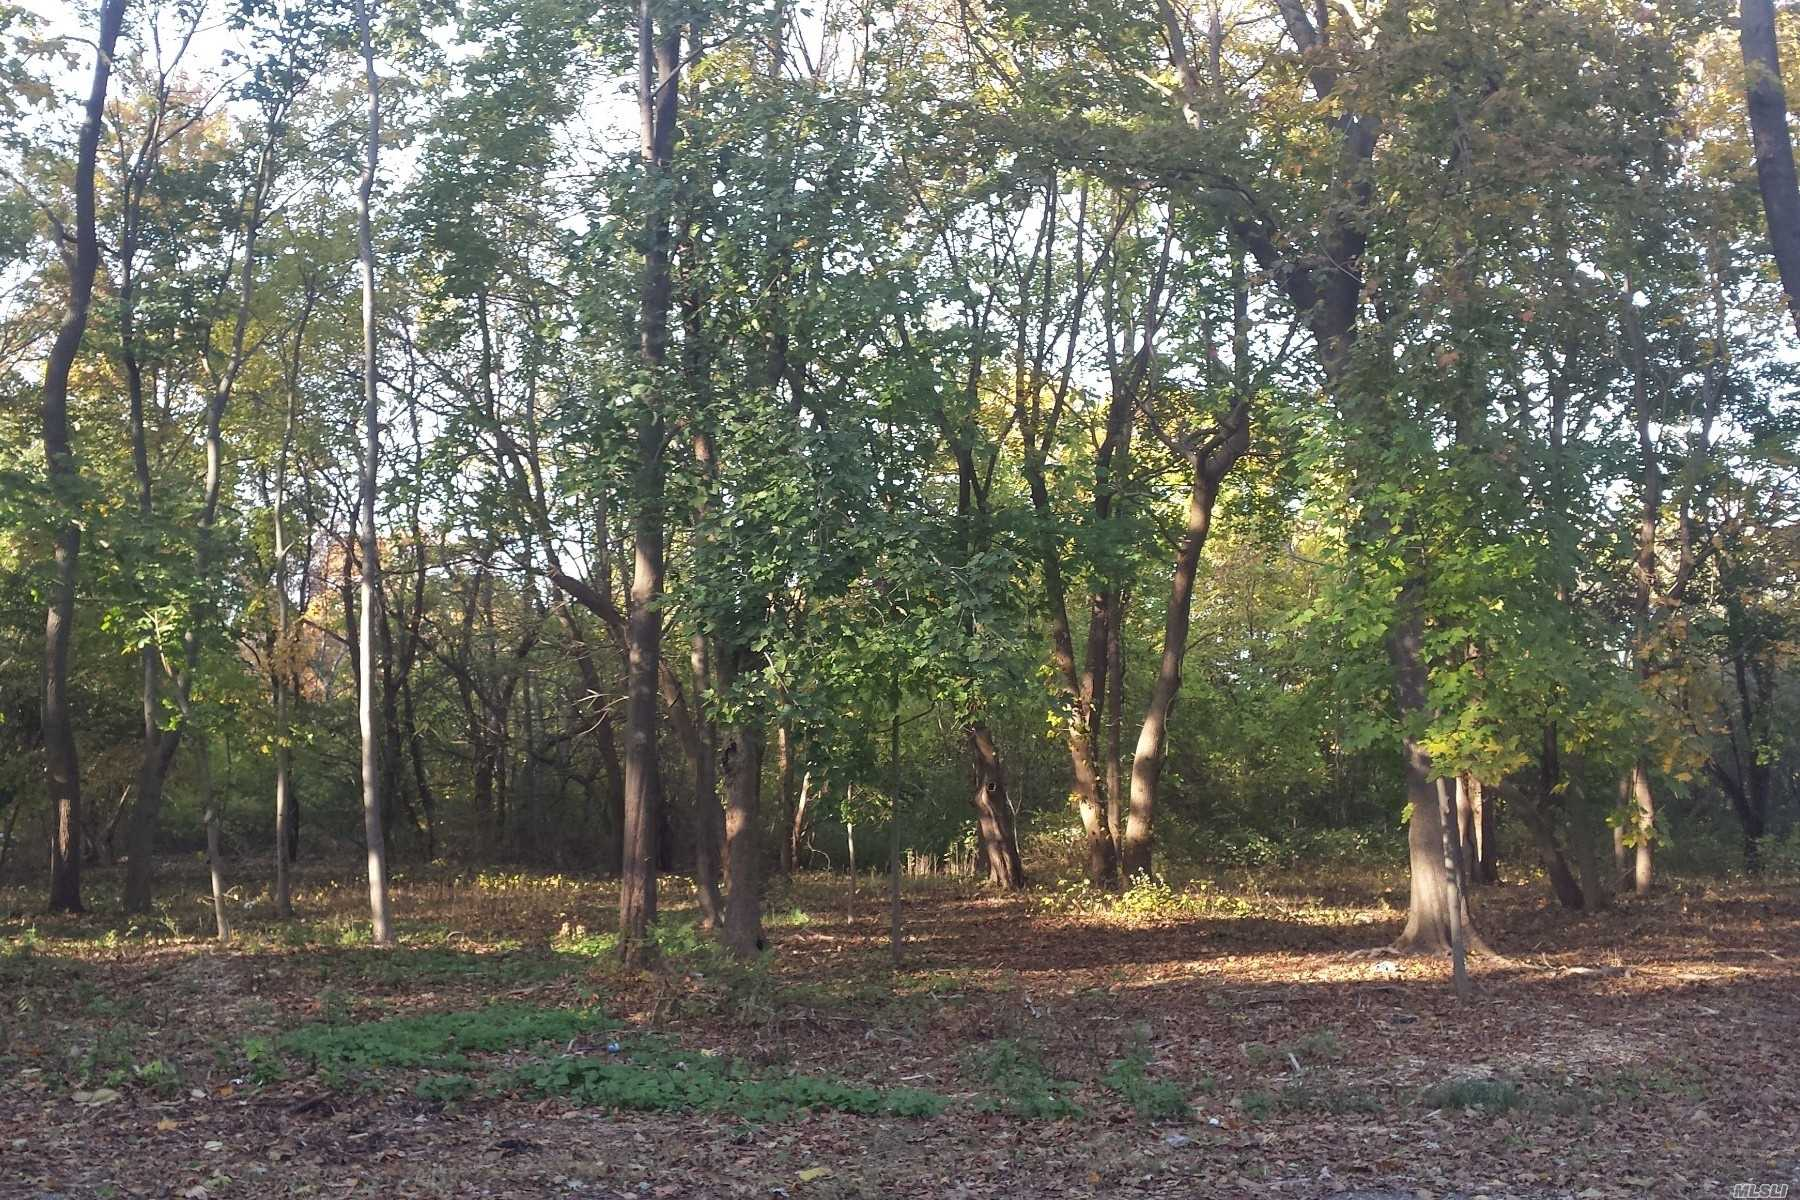 Opportunity Presents Itself With This Undeveloped 2.38 Acre Parcel In The Village Of Old Westbury. Centrally Located, It Features Pond Views And A Chance To Build Your Own Custom Dream Home.